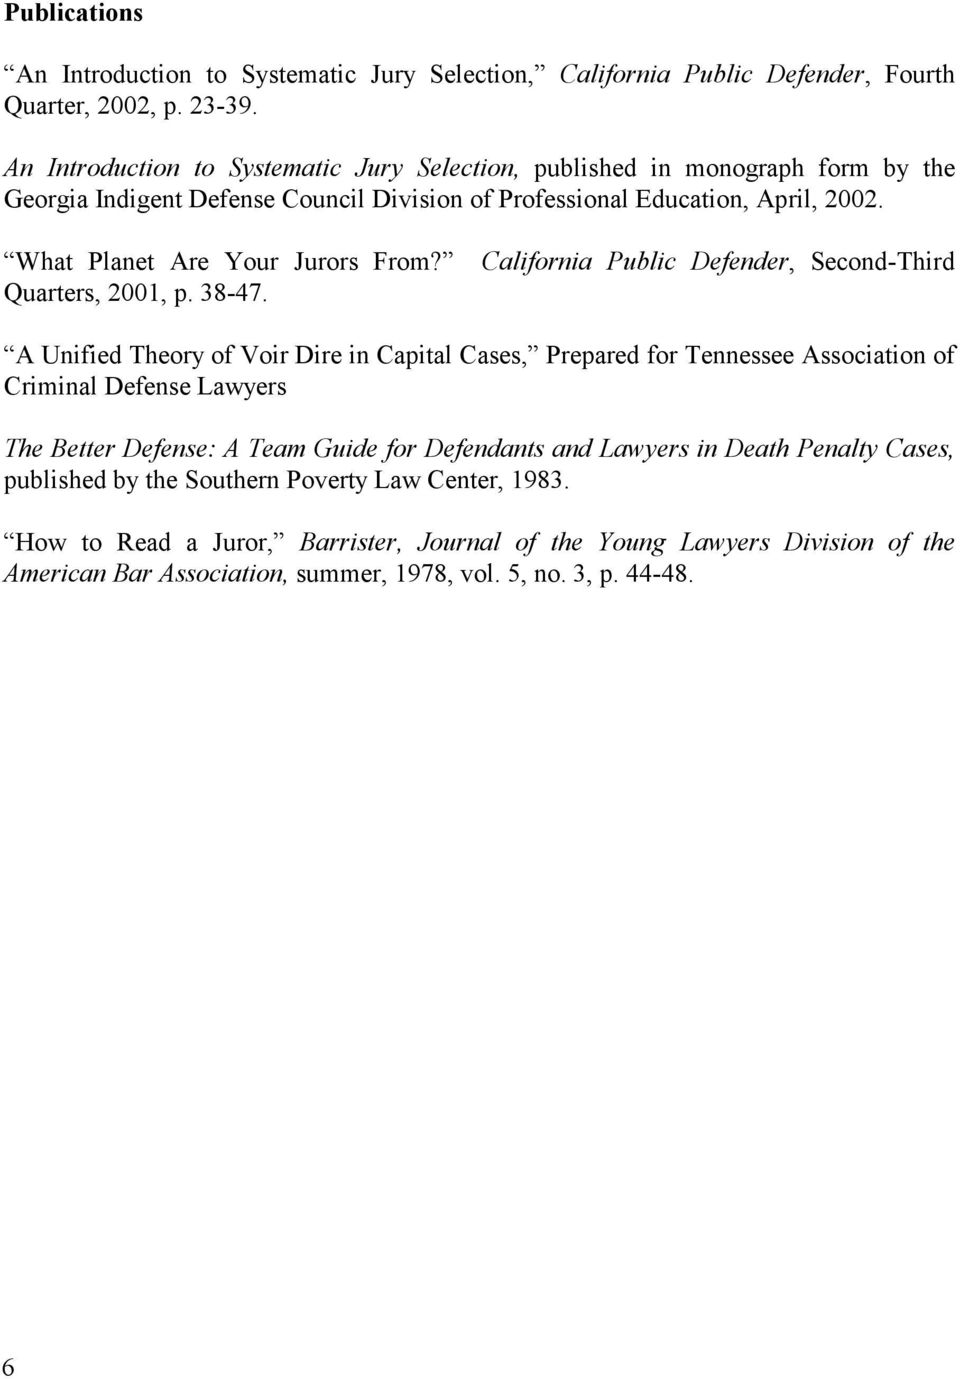 What Planet Are Your Jurors From? California Public Defender, Second-Third Quarters, 2001, p. 38-47.